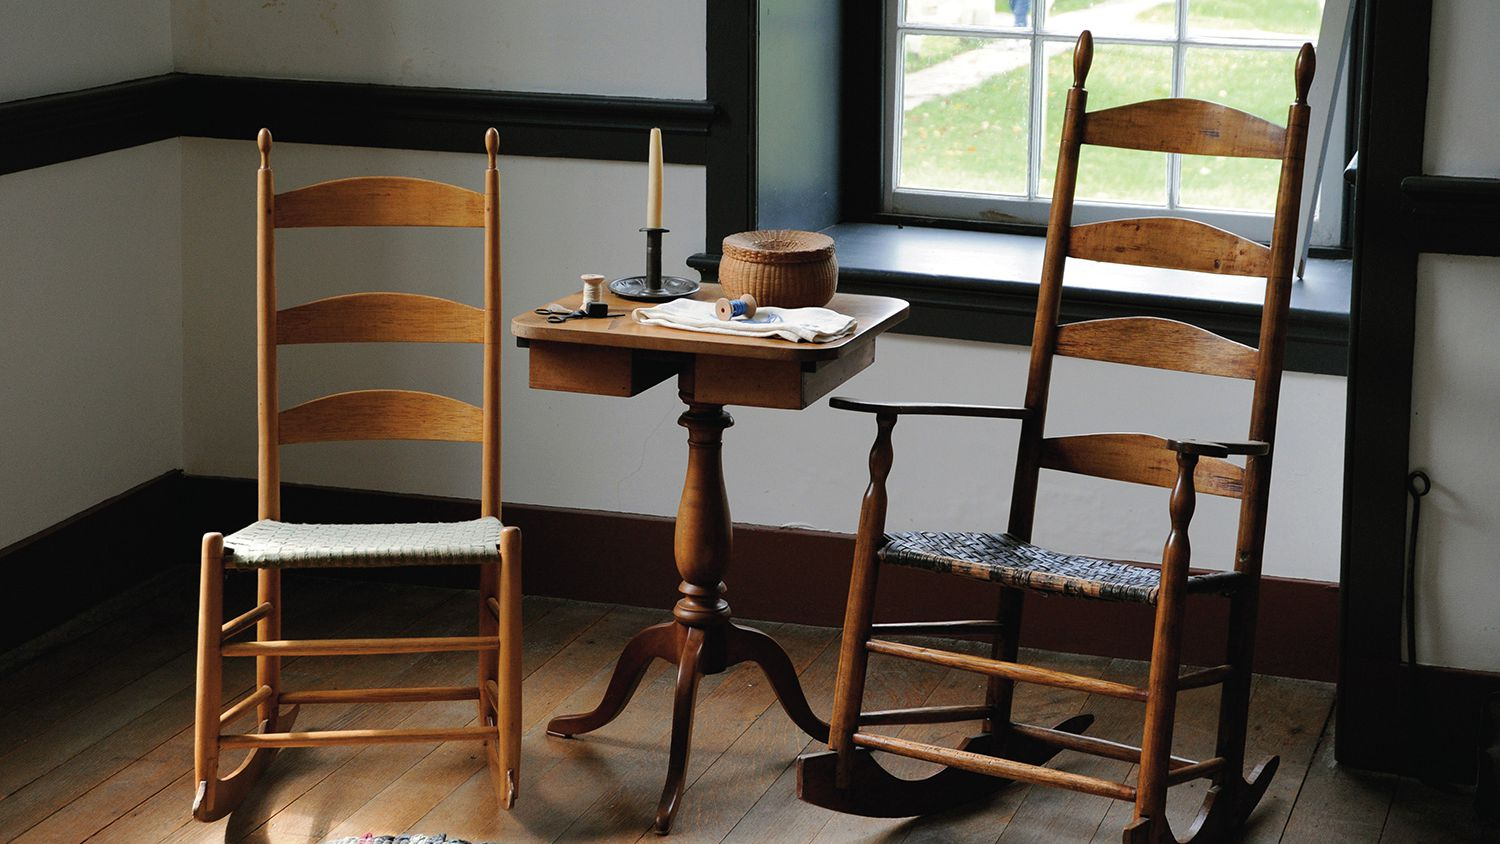 Picture of: The Shaker Chair Recognizable American Furniture